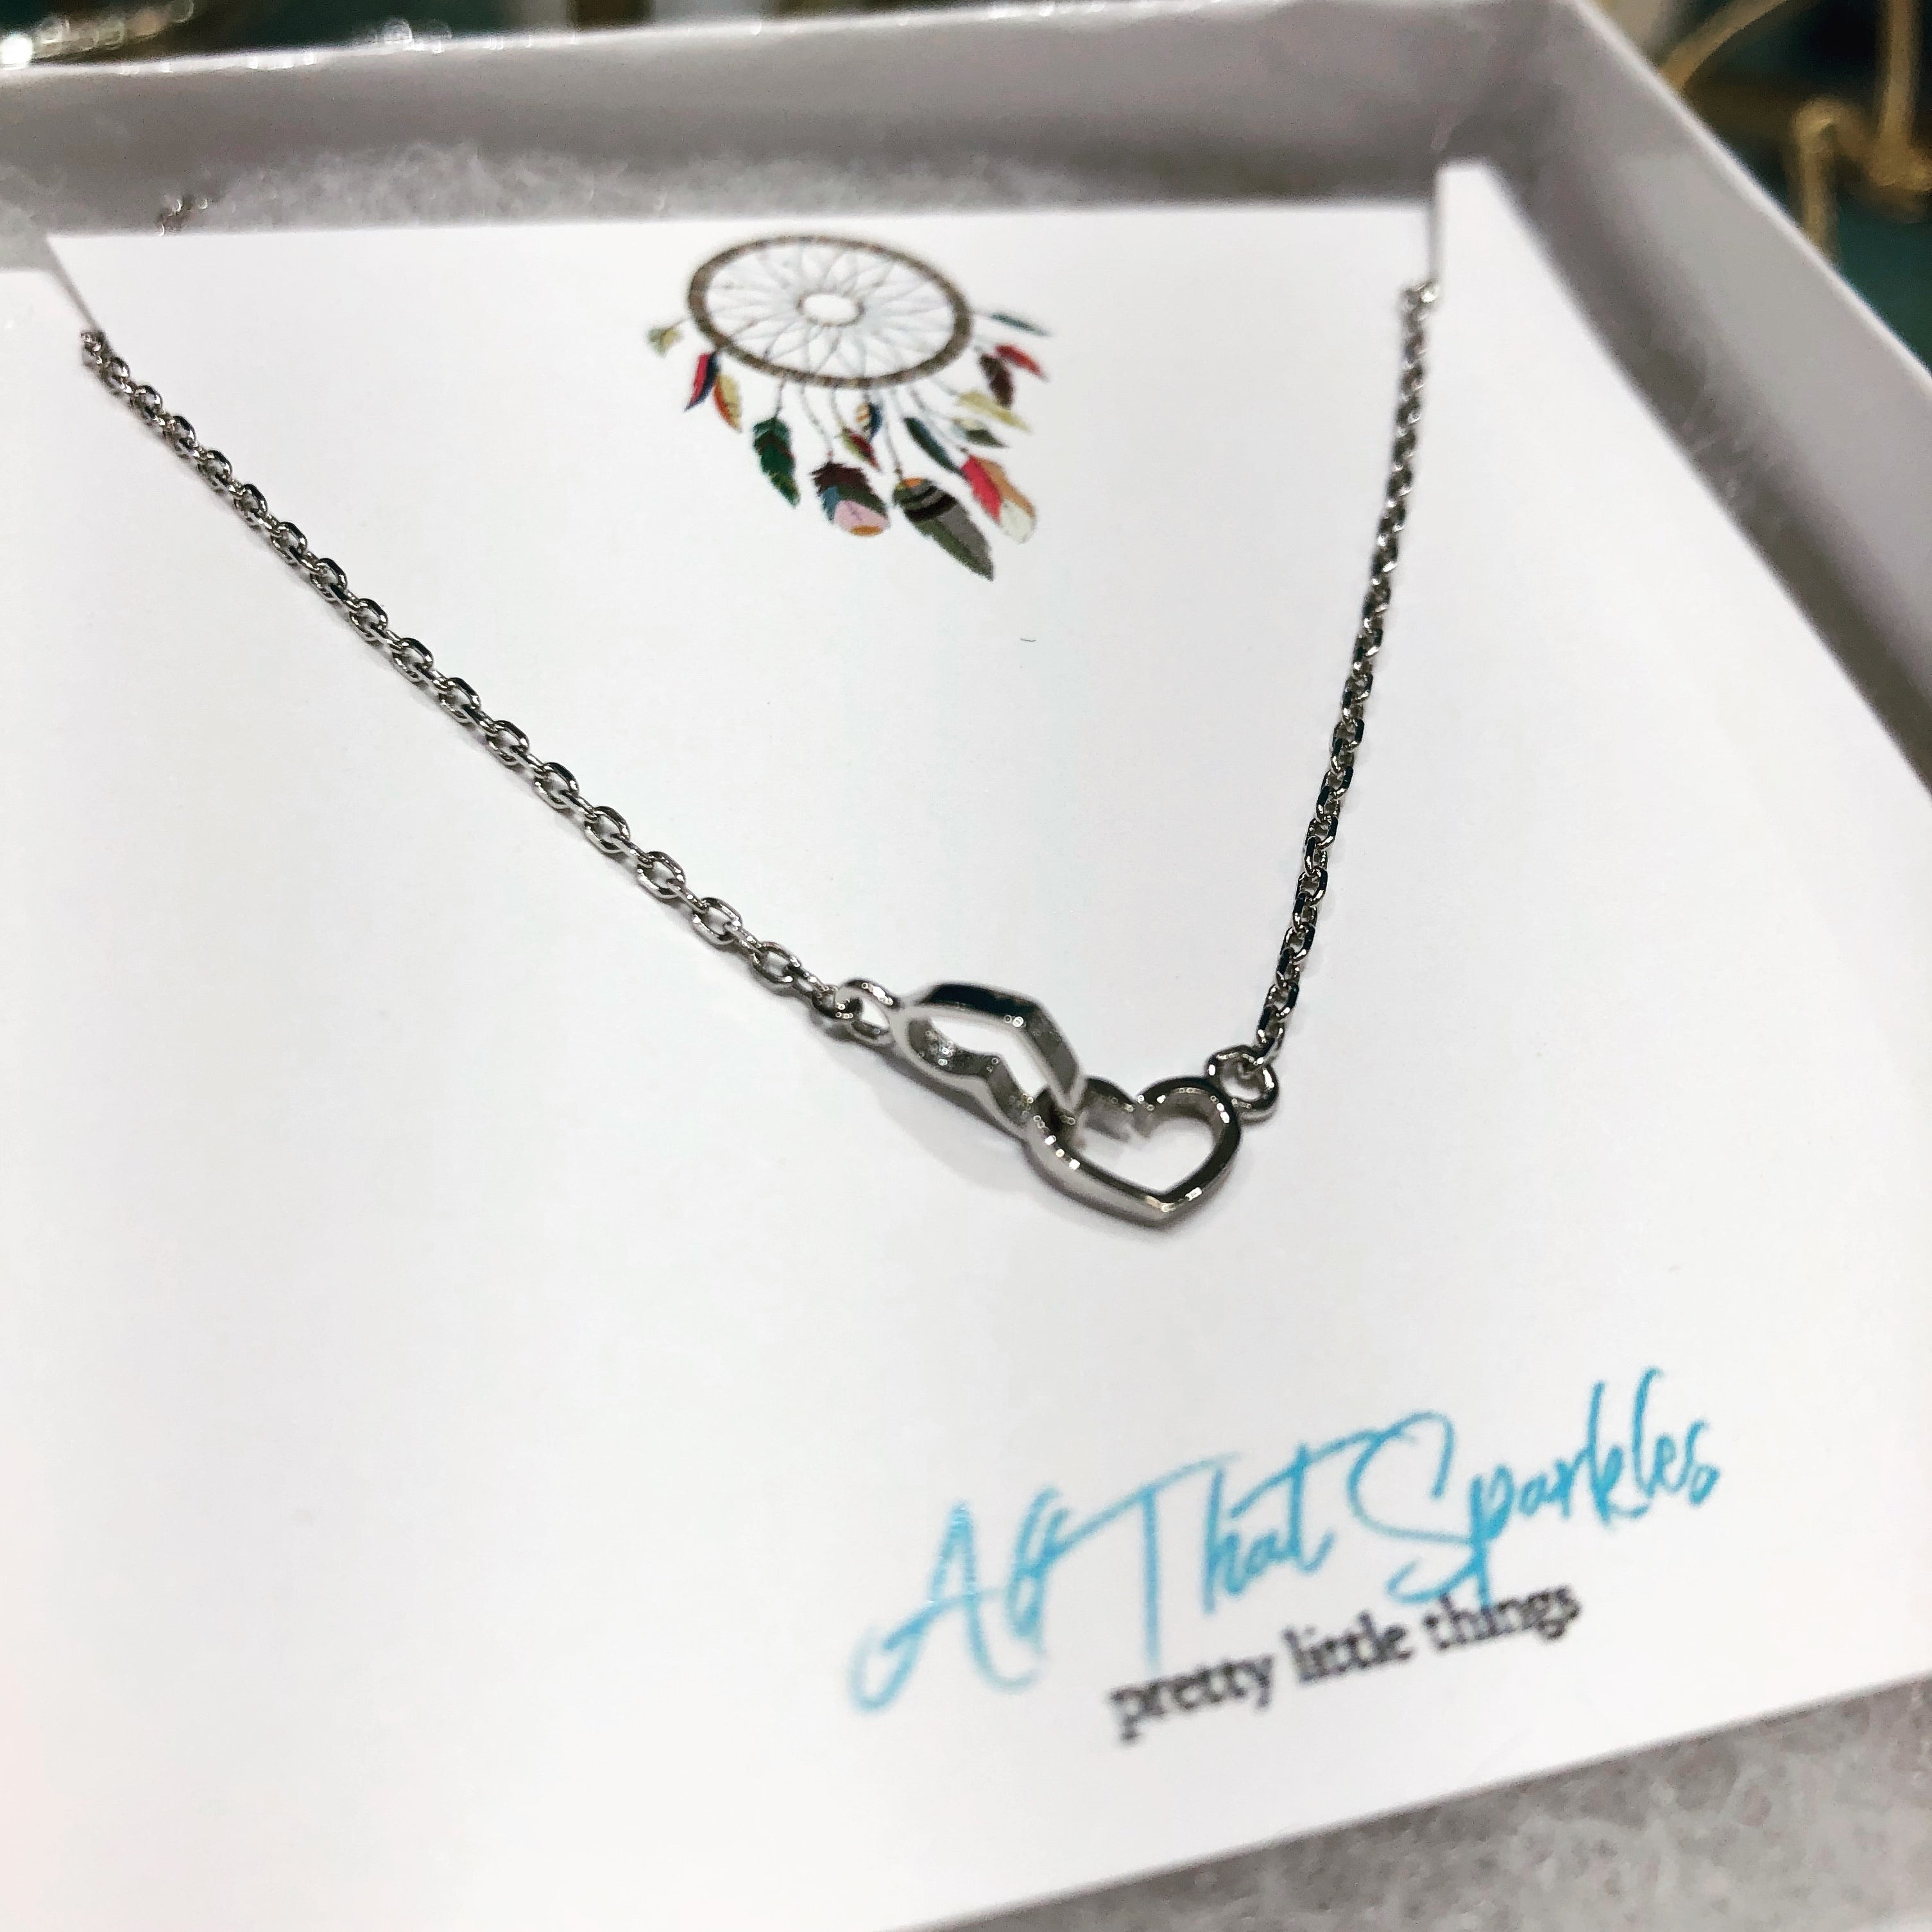 Tori Hearts Necklace